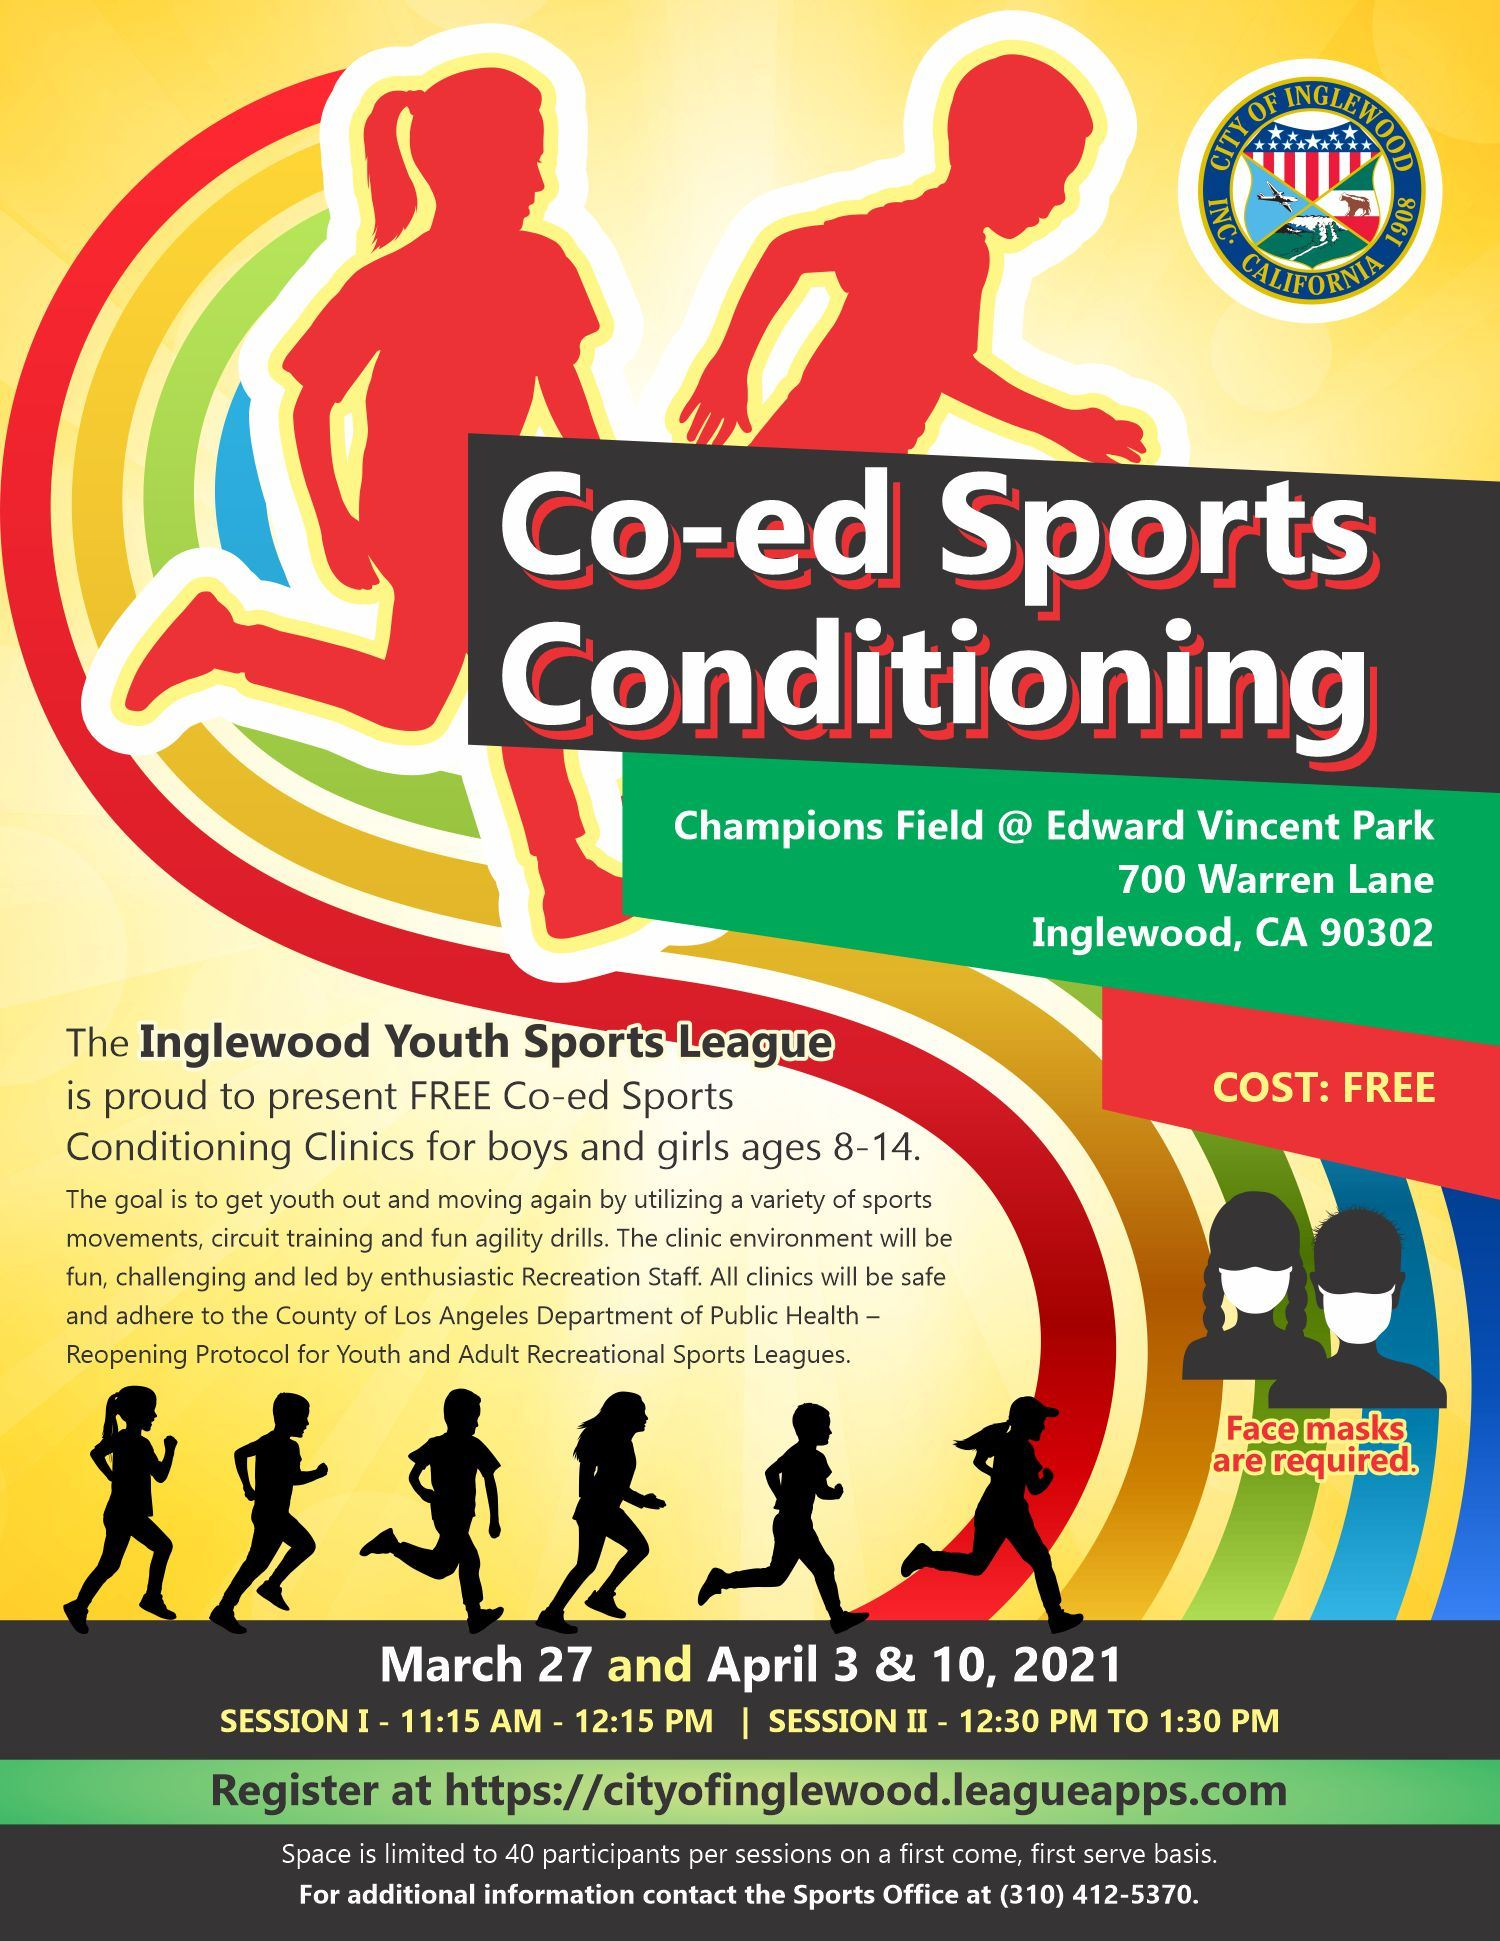 Co-ed Sports Conditioning